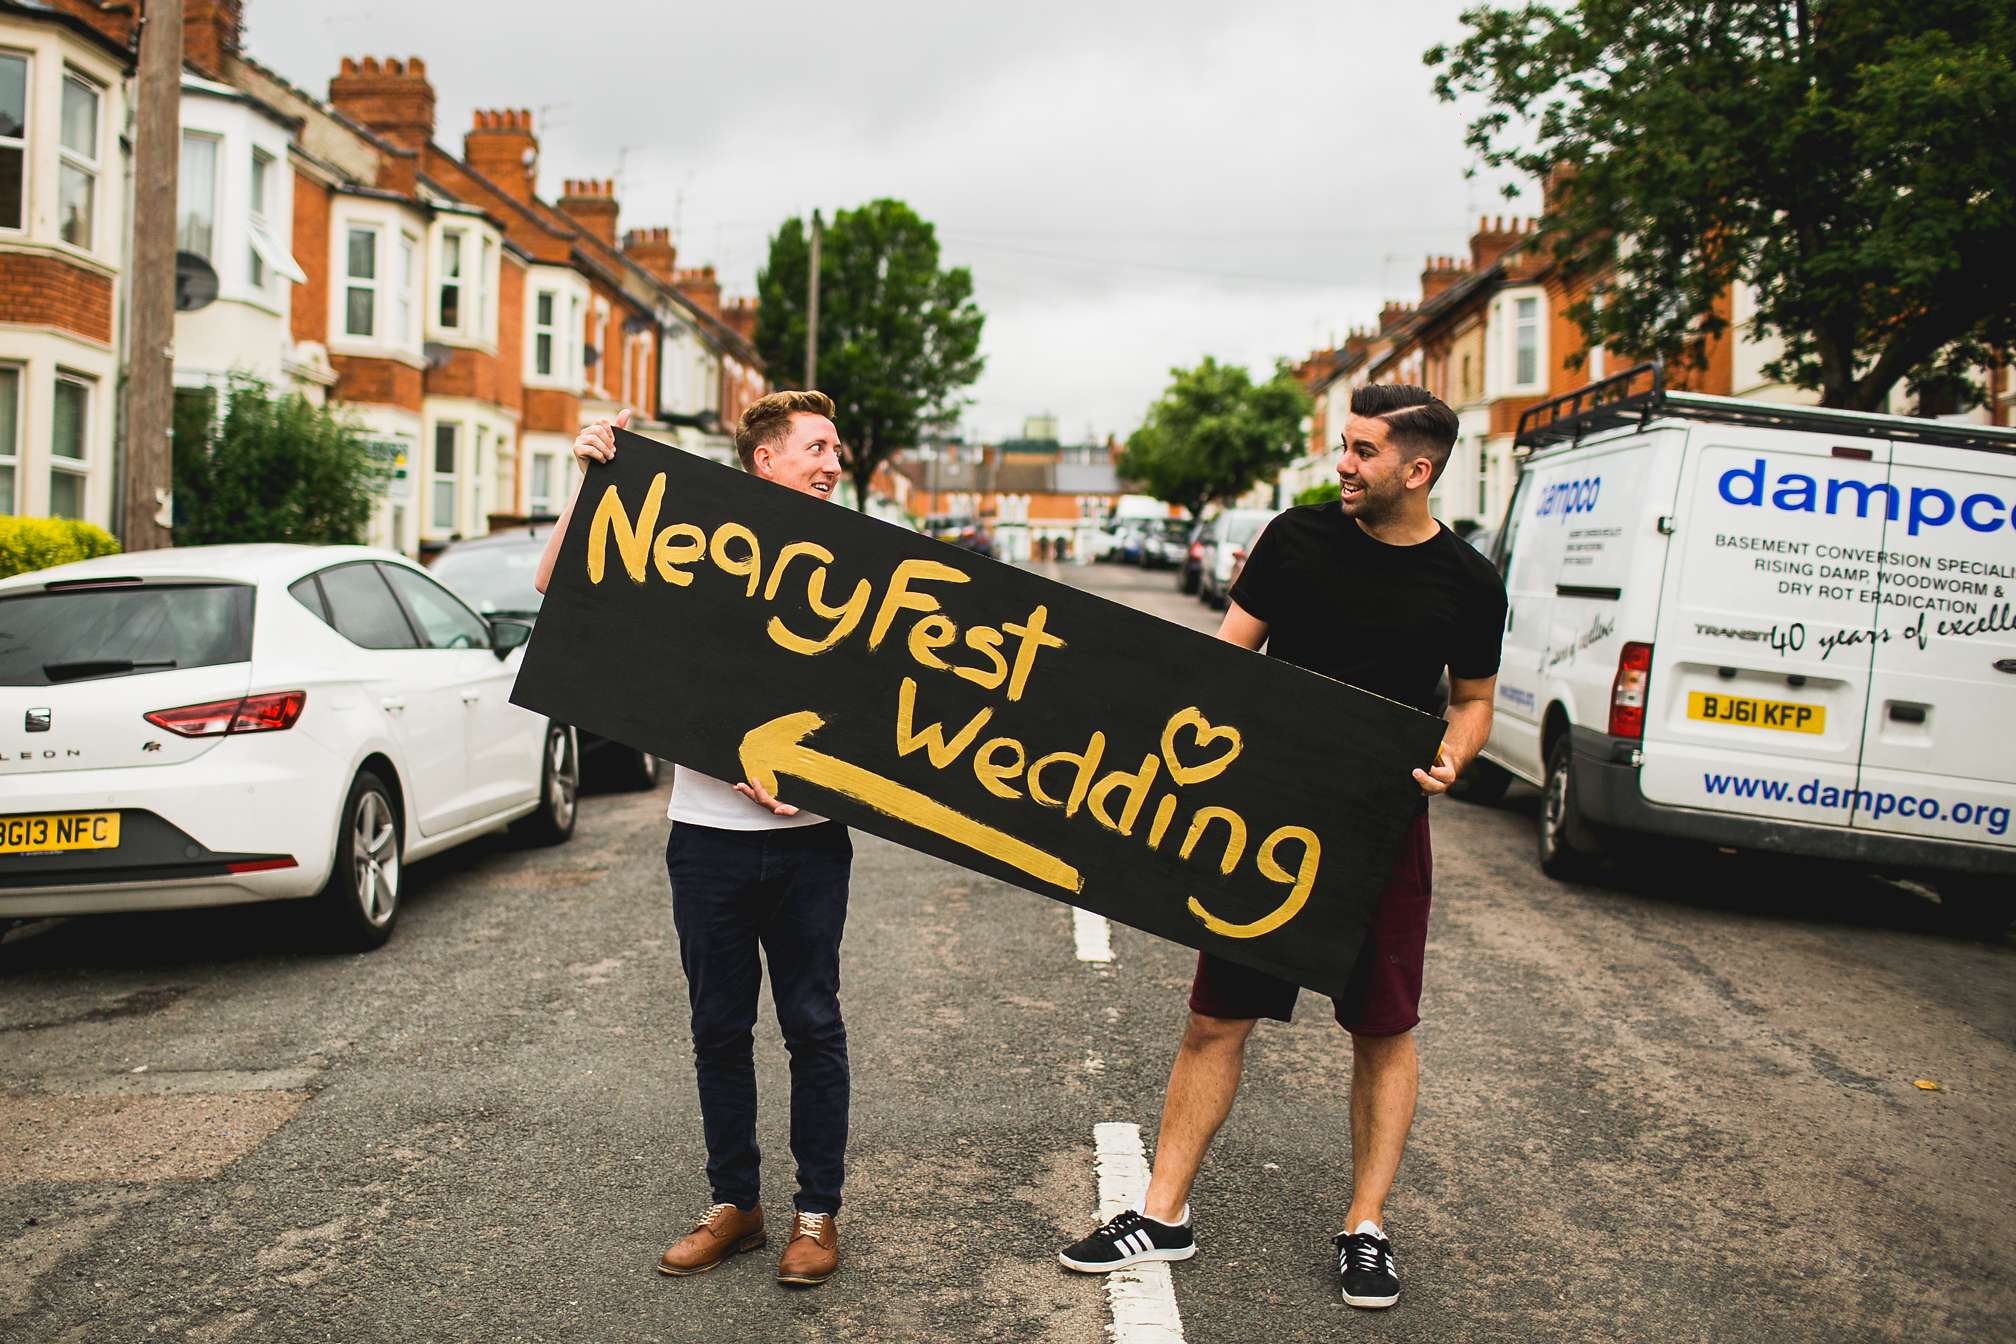 Neary Fest Wedding sign